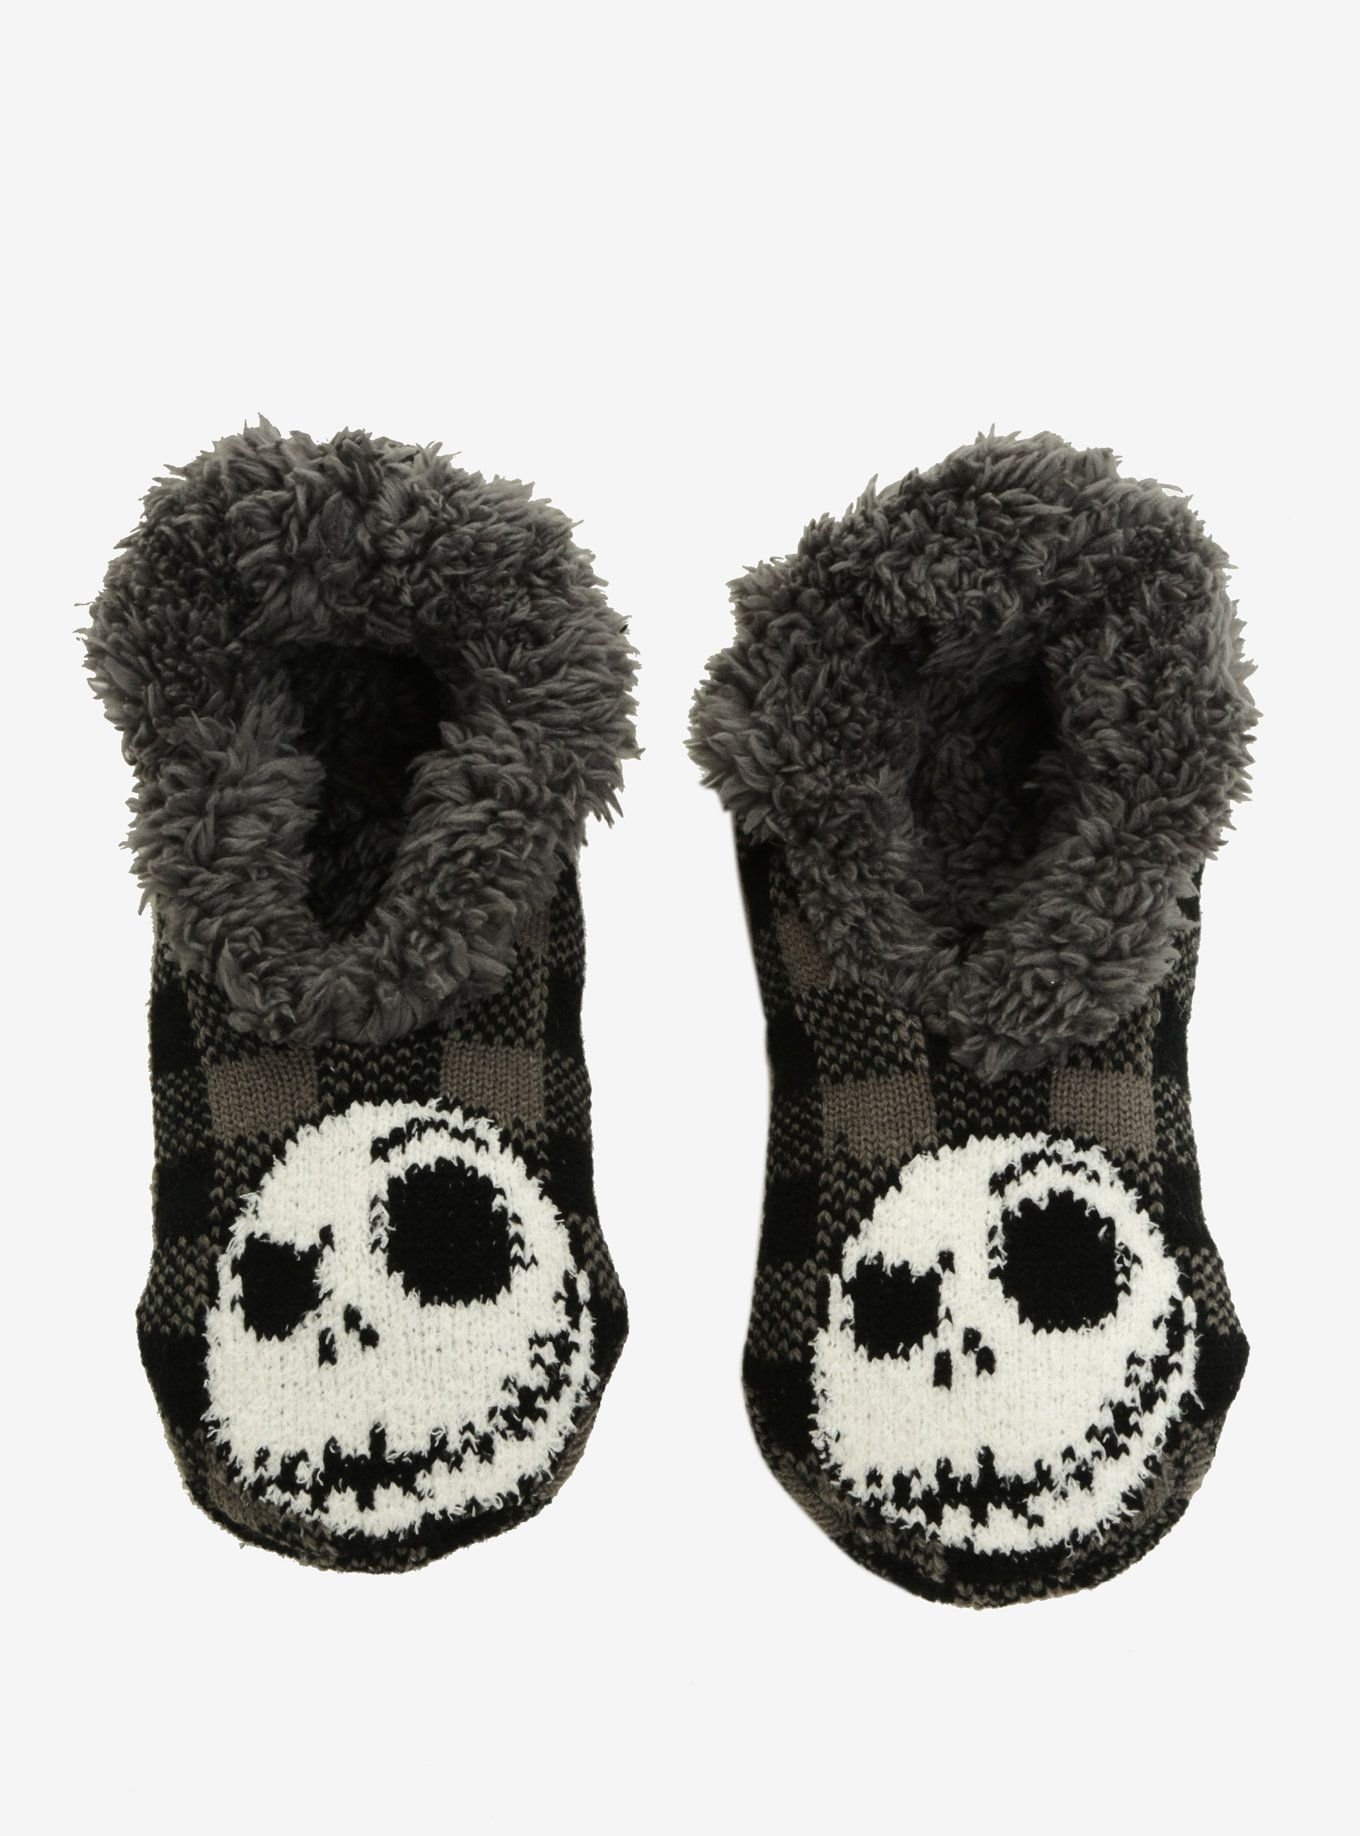 The Nightmare Before Christmas Plaid Cozy Slippers | Plaid, Cozy and ...